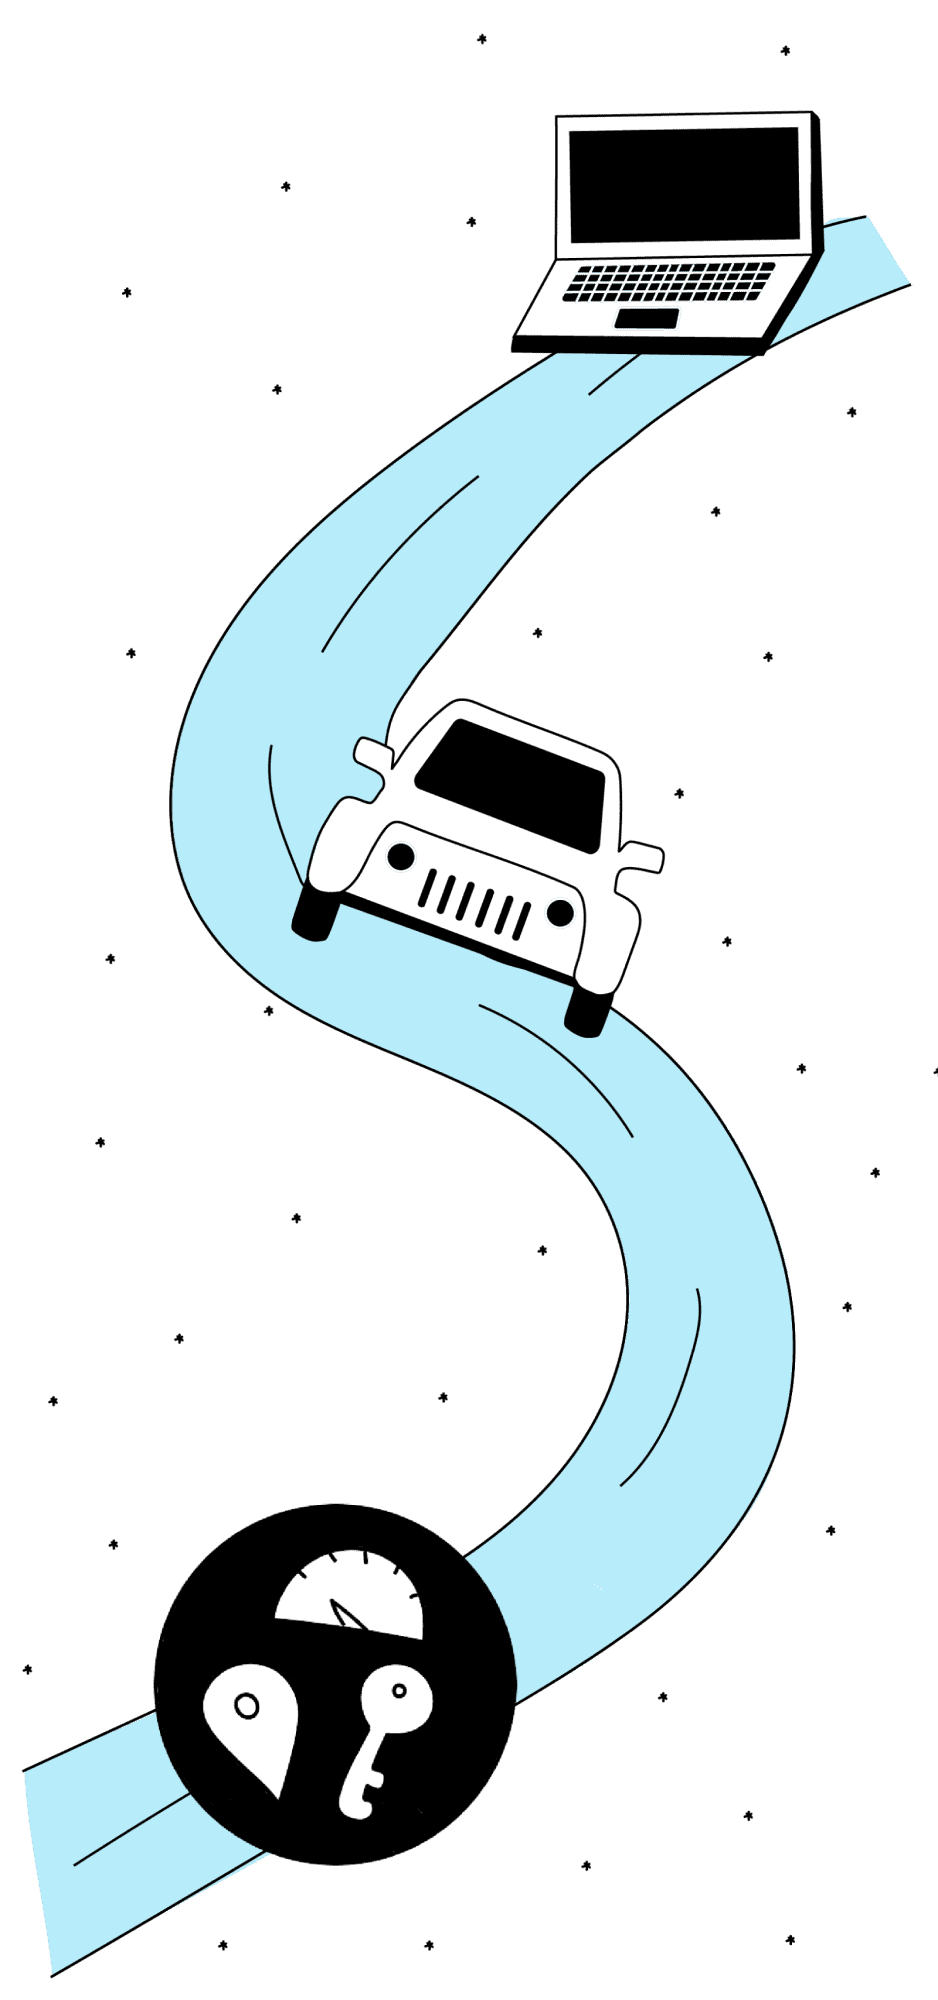 An illustration of a connected vehicle on a winding road.